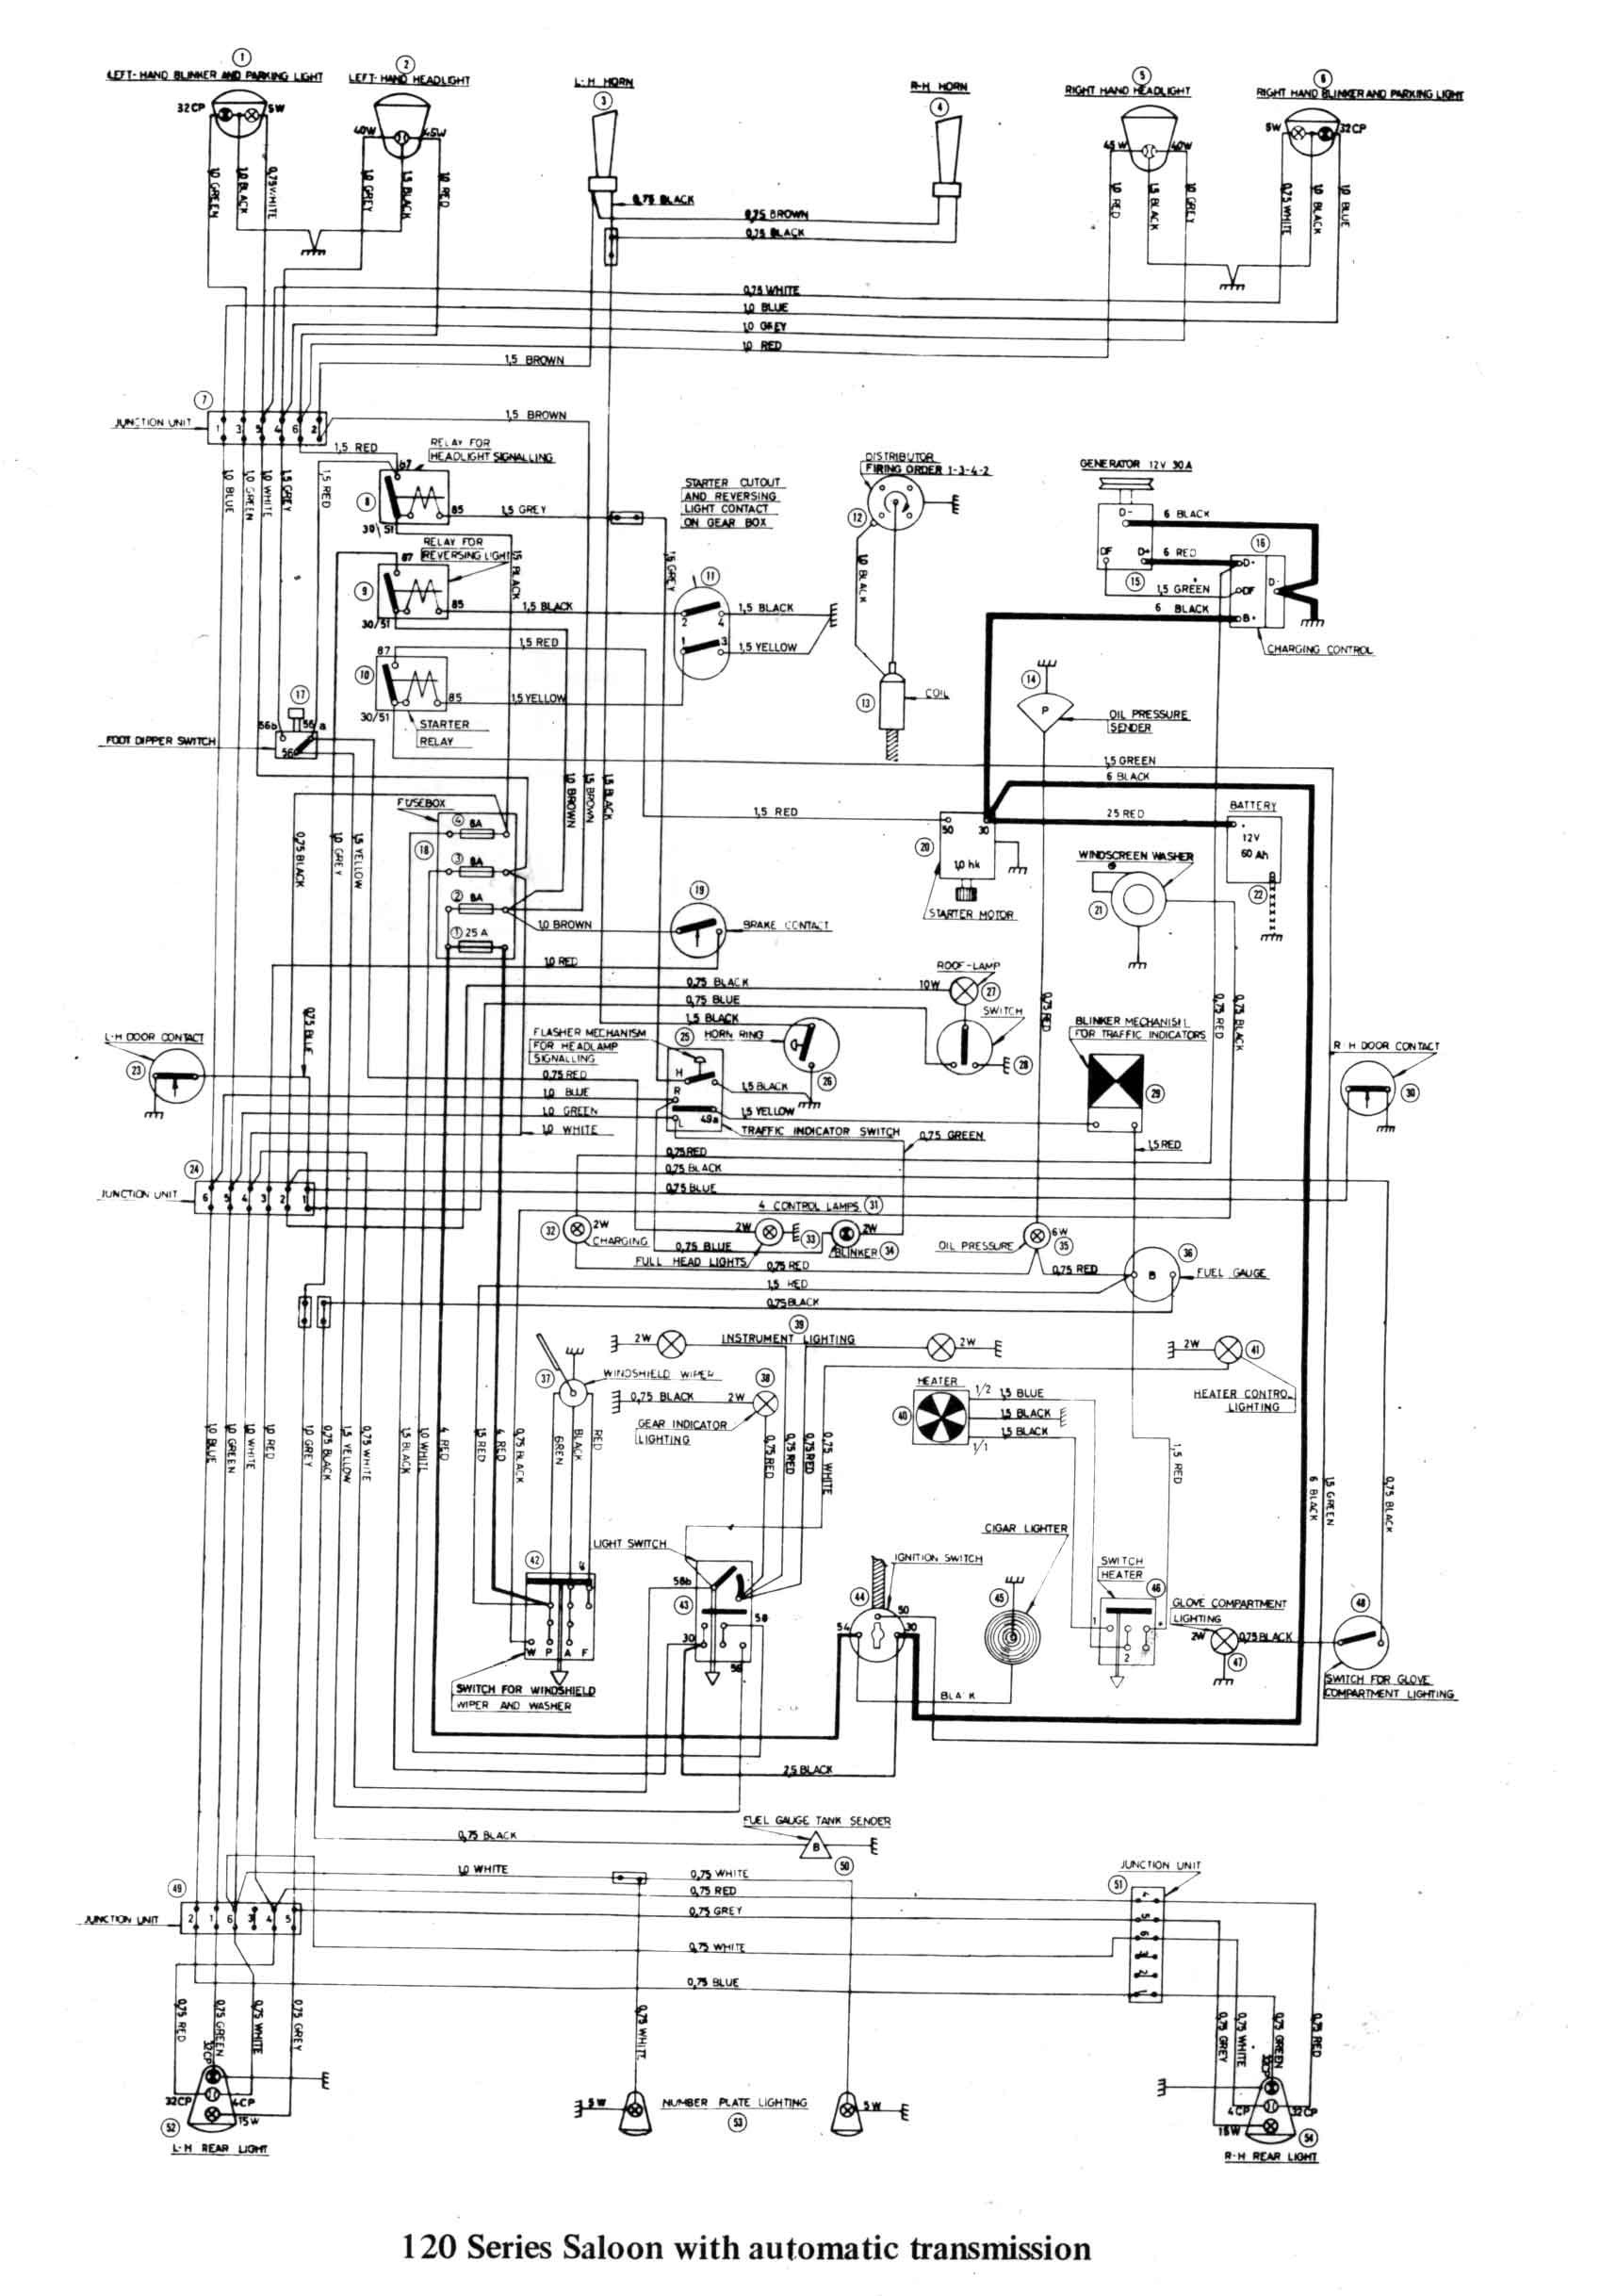 hight resolution of saab 93 engine diagram 2003 saab 9 3 convertible release motor rear diagram saab wiring of